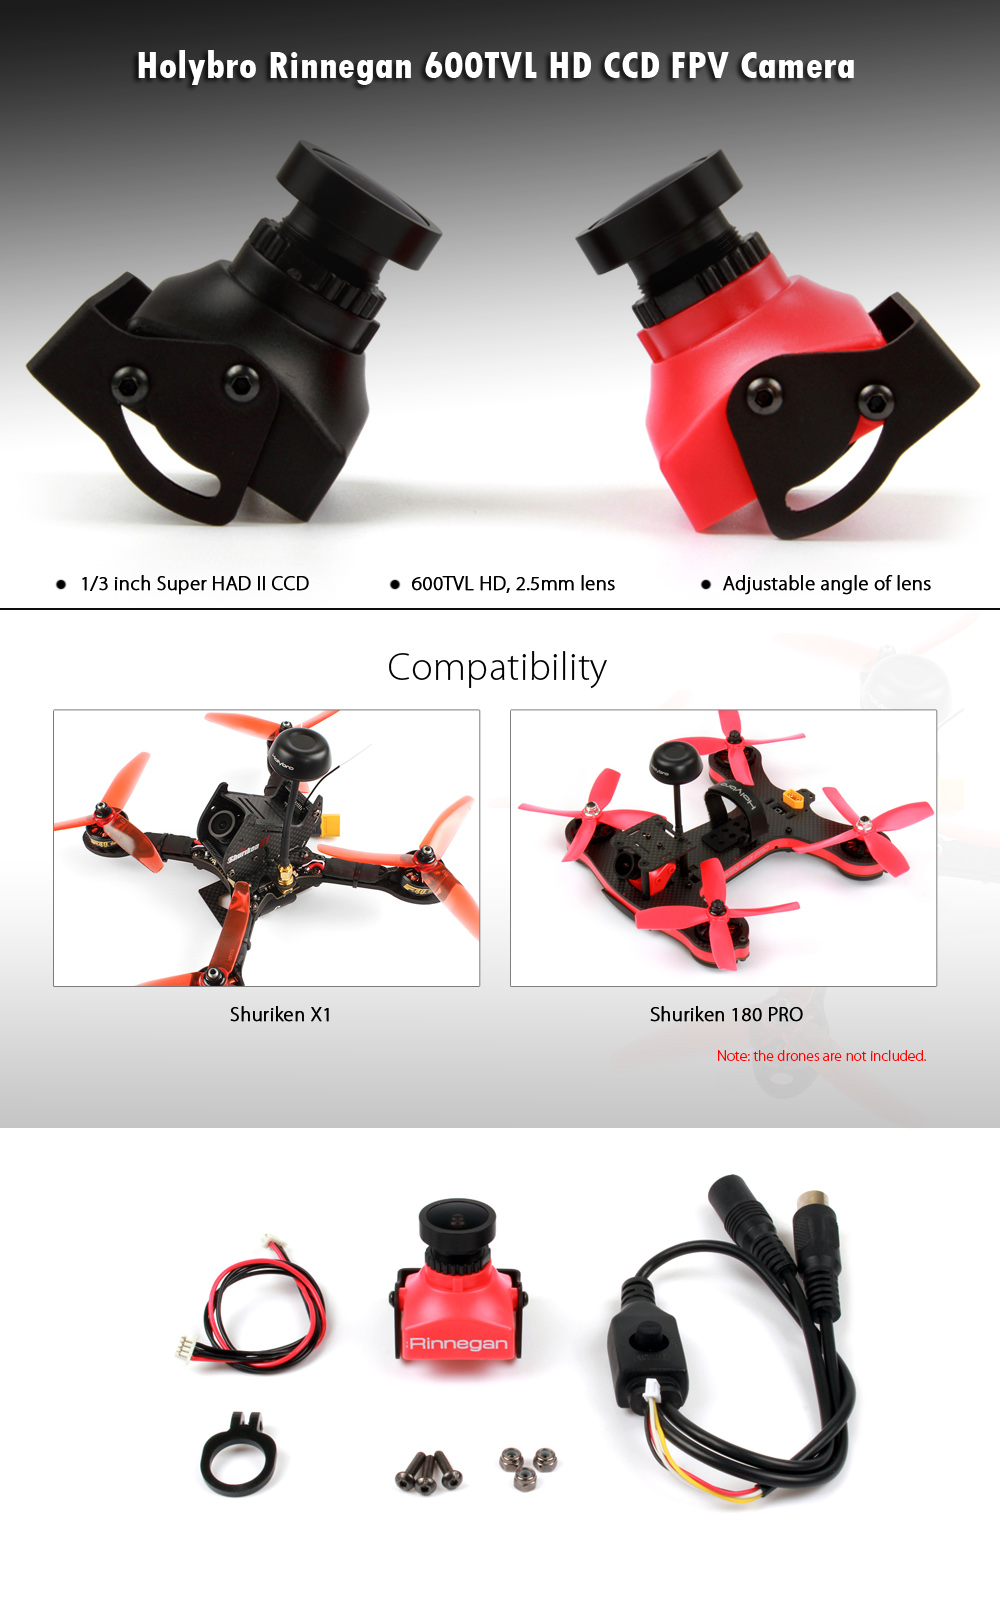 Holybro Rinnegan 600TVL HD Aerial Camera with CCD Sensor for Shuriken X1 / 180 PRO